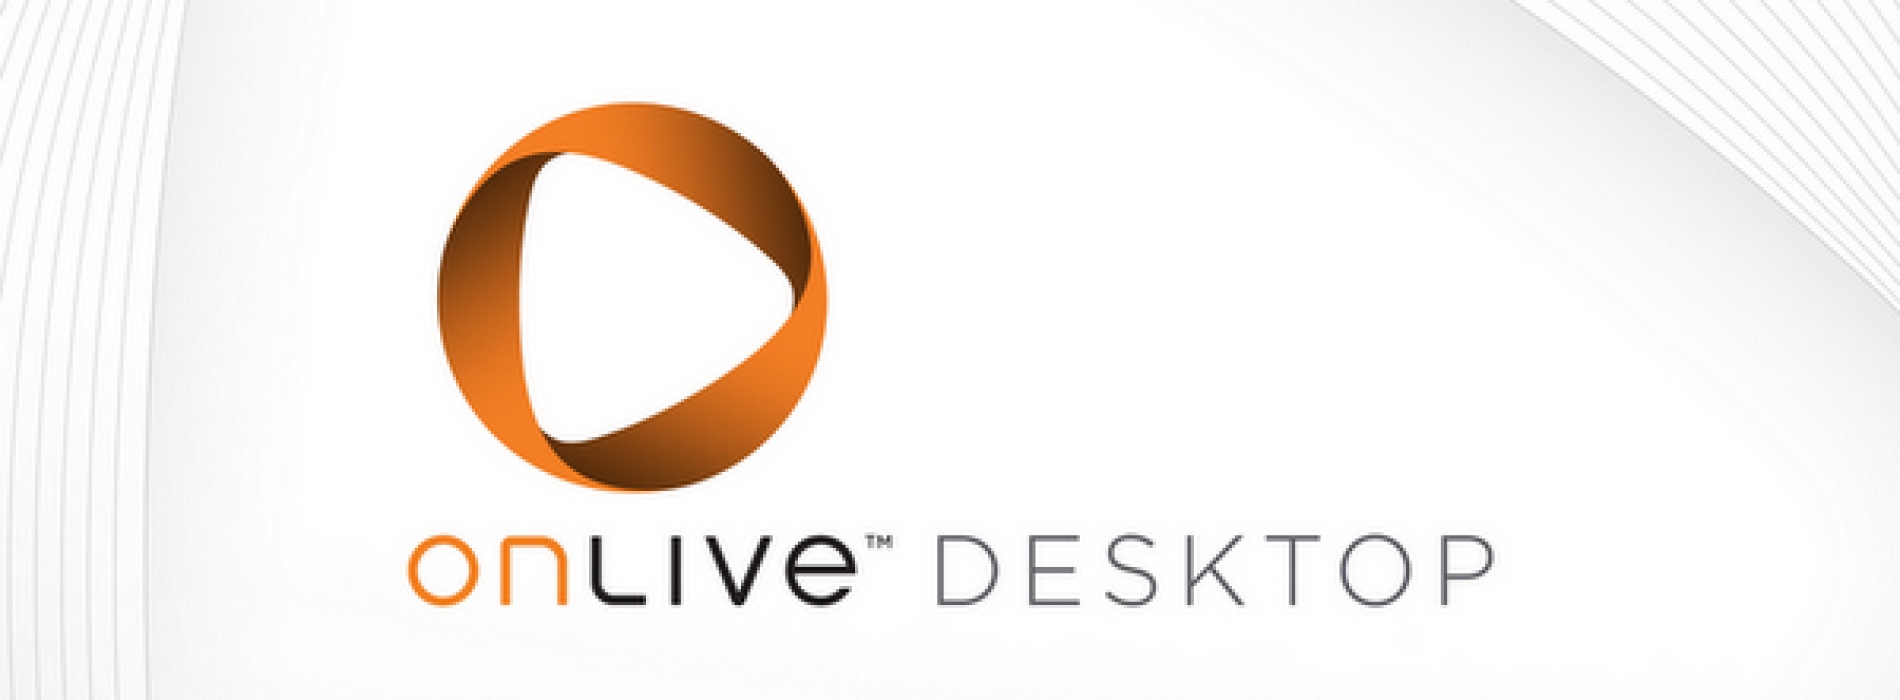 OnLive Desktop arrives with full Microsoft Office and Adobe Reader support